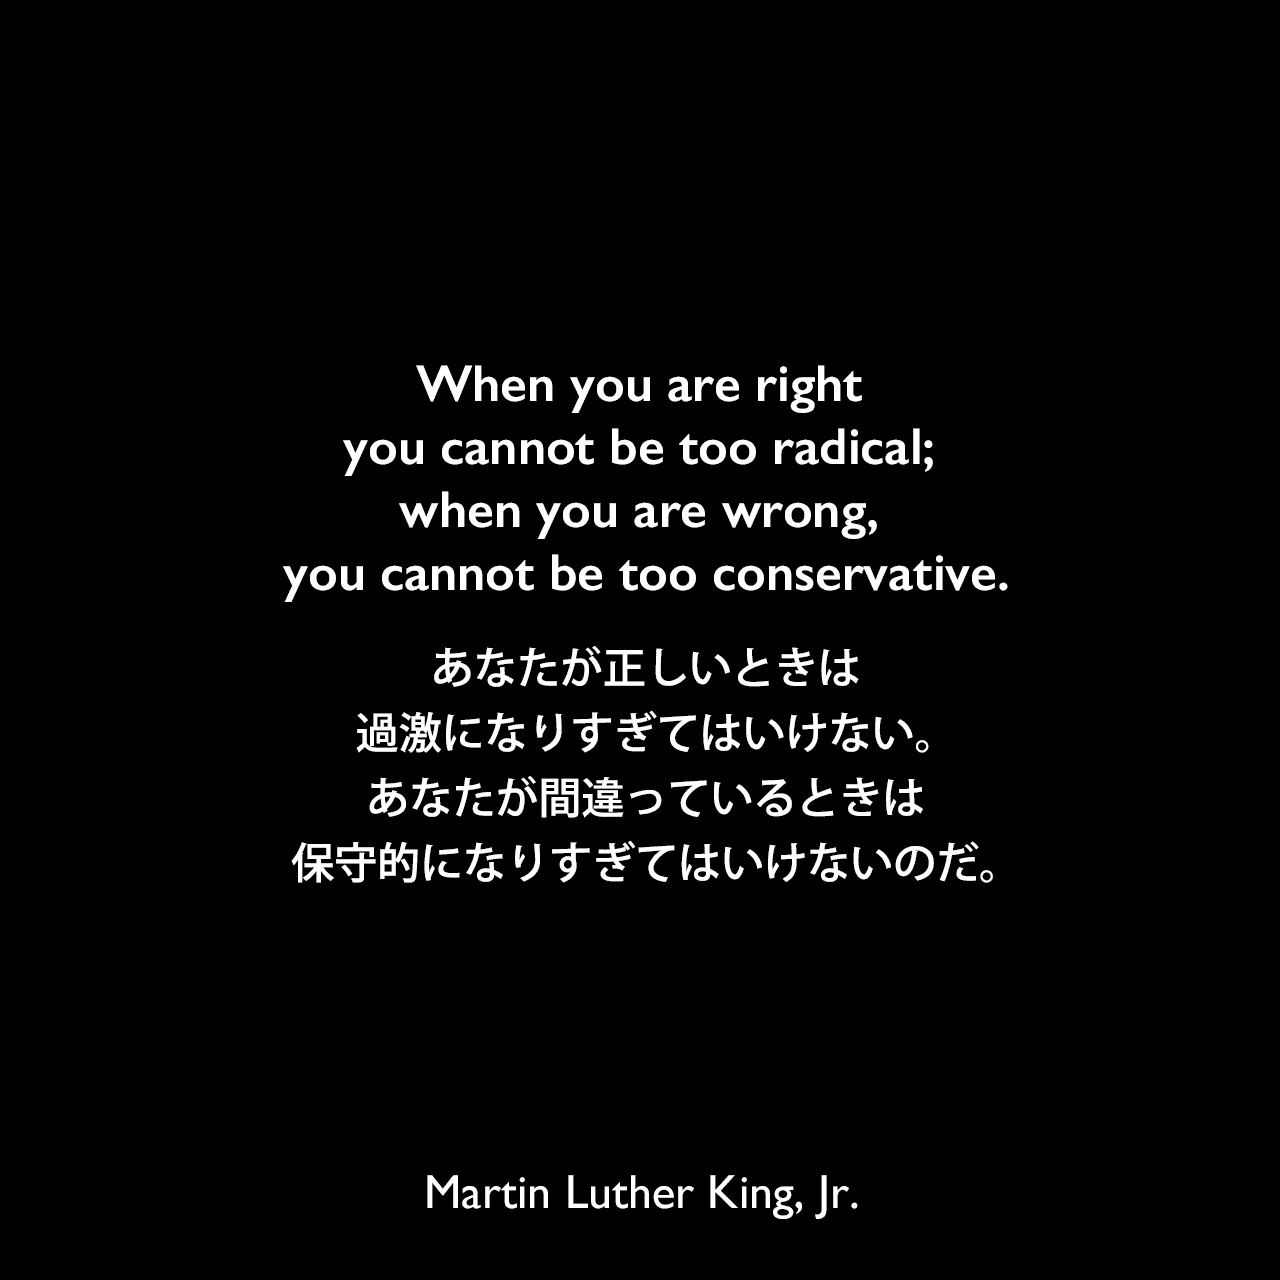 When you are right you cannot be too radical; when you are wrong, you cannot be too conservative.あなたが正しいときは、過激になりすぎてはいけない。あなたが間違っているときは、保守的になりすぎてはいけないのだ。- マーティン・ルーサー・キング・ジュニアによる本「Why We Can't Wait (1964)」よりMartin Luther King, Jr.